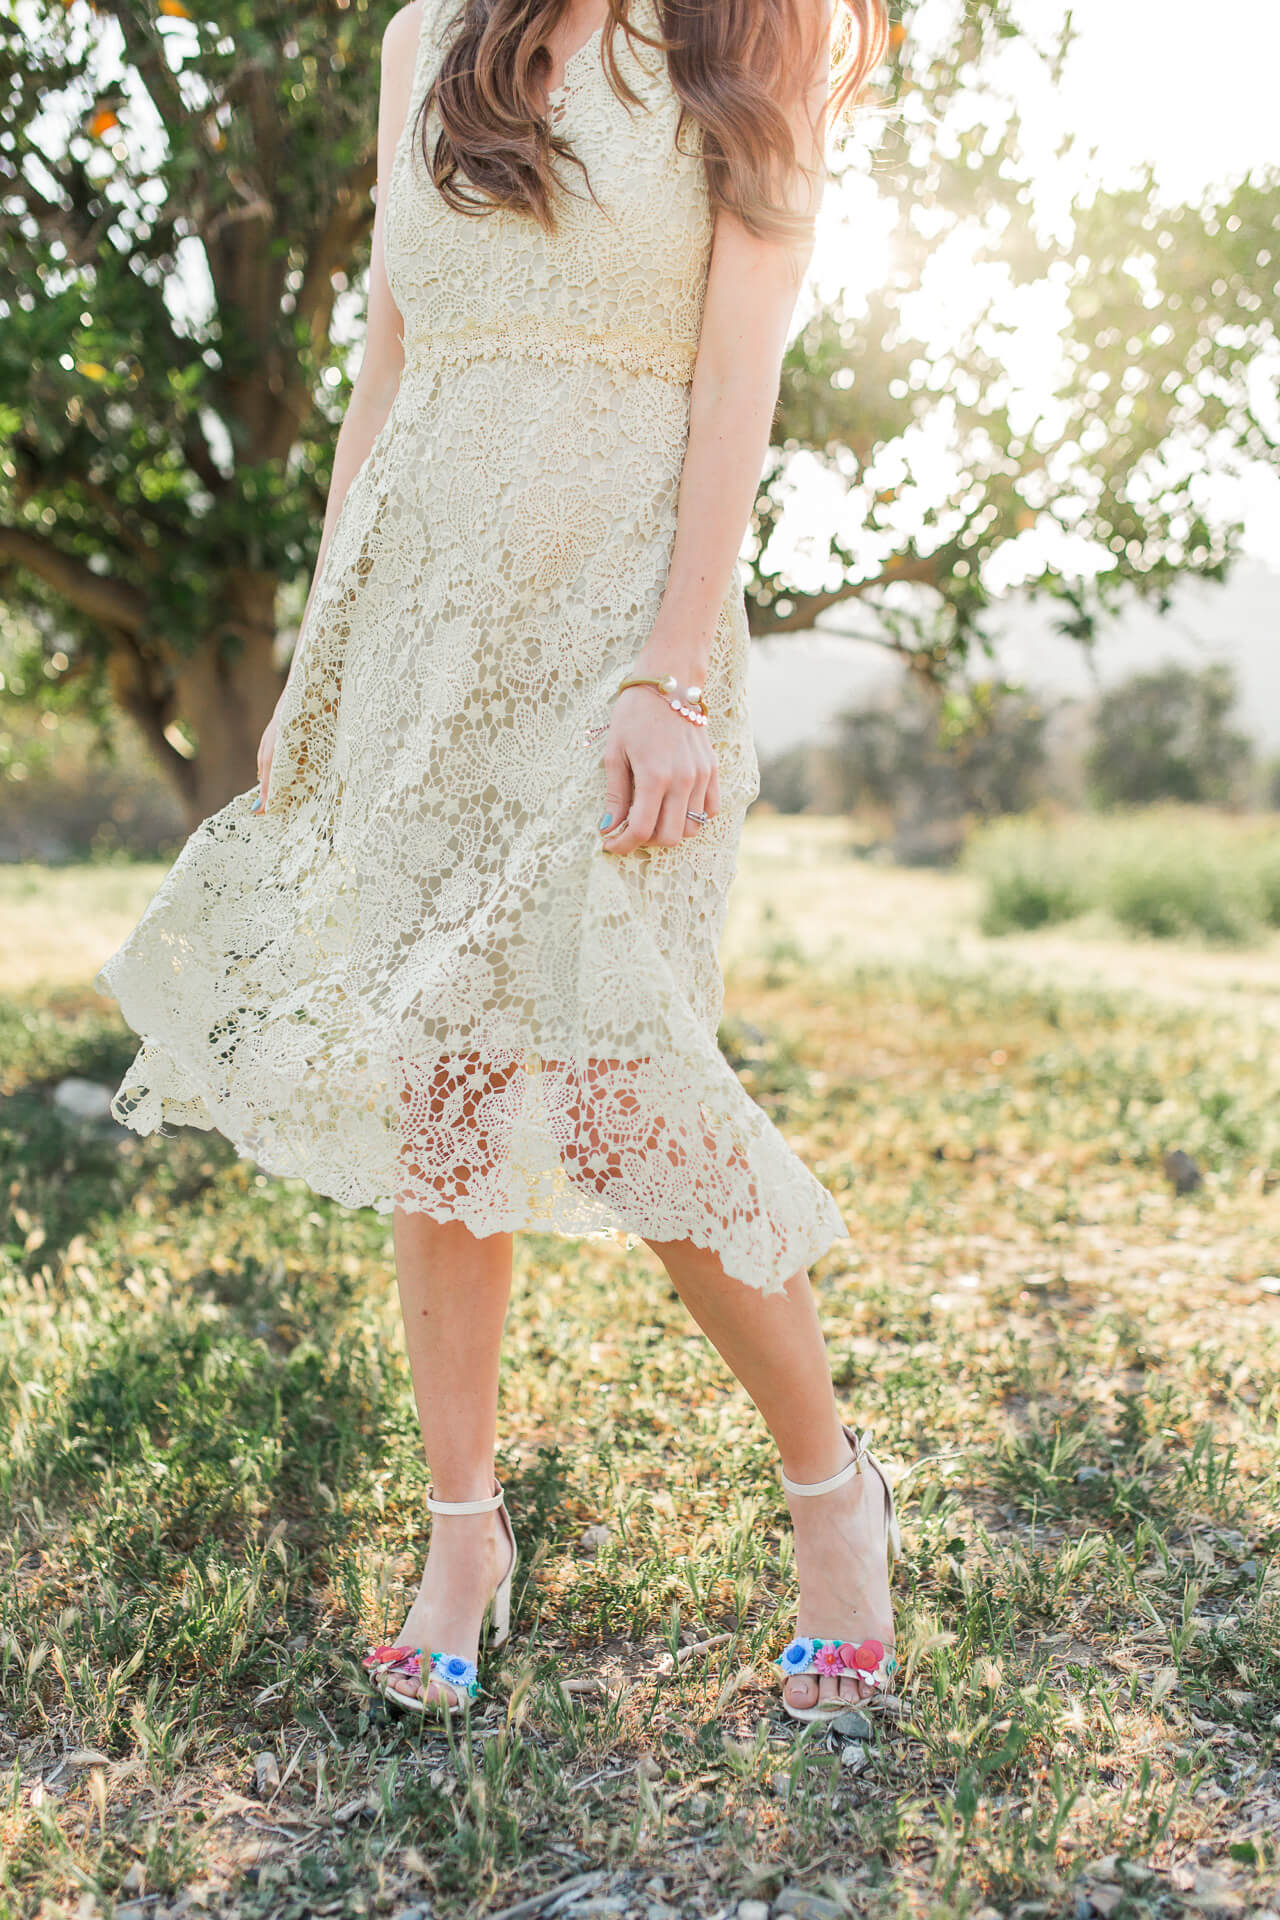 pretty details - floral kate spade sandal heels with donna morgan lace dress